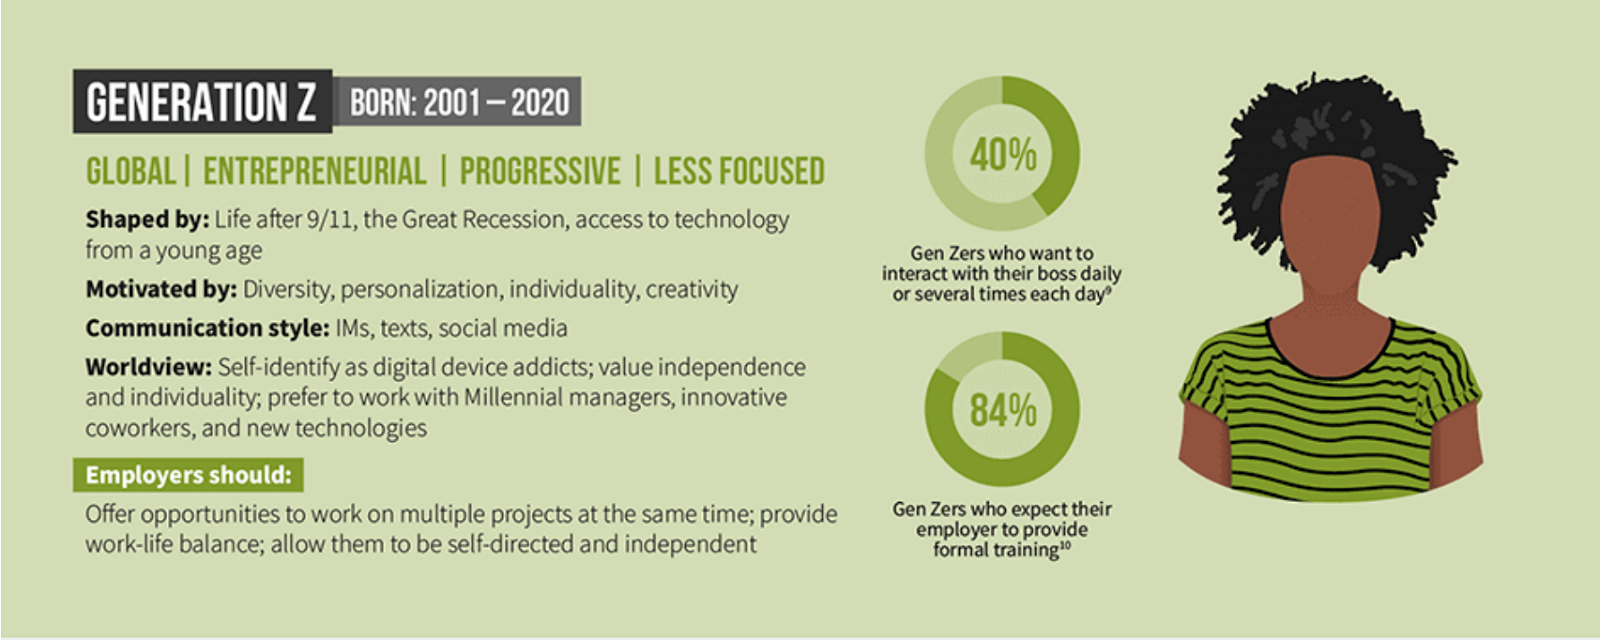 Why small business owners often struggle in attracting qualified workers: Infographics on Generation Z